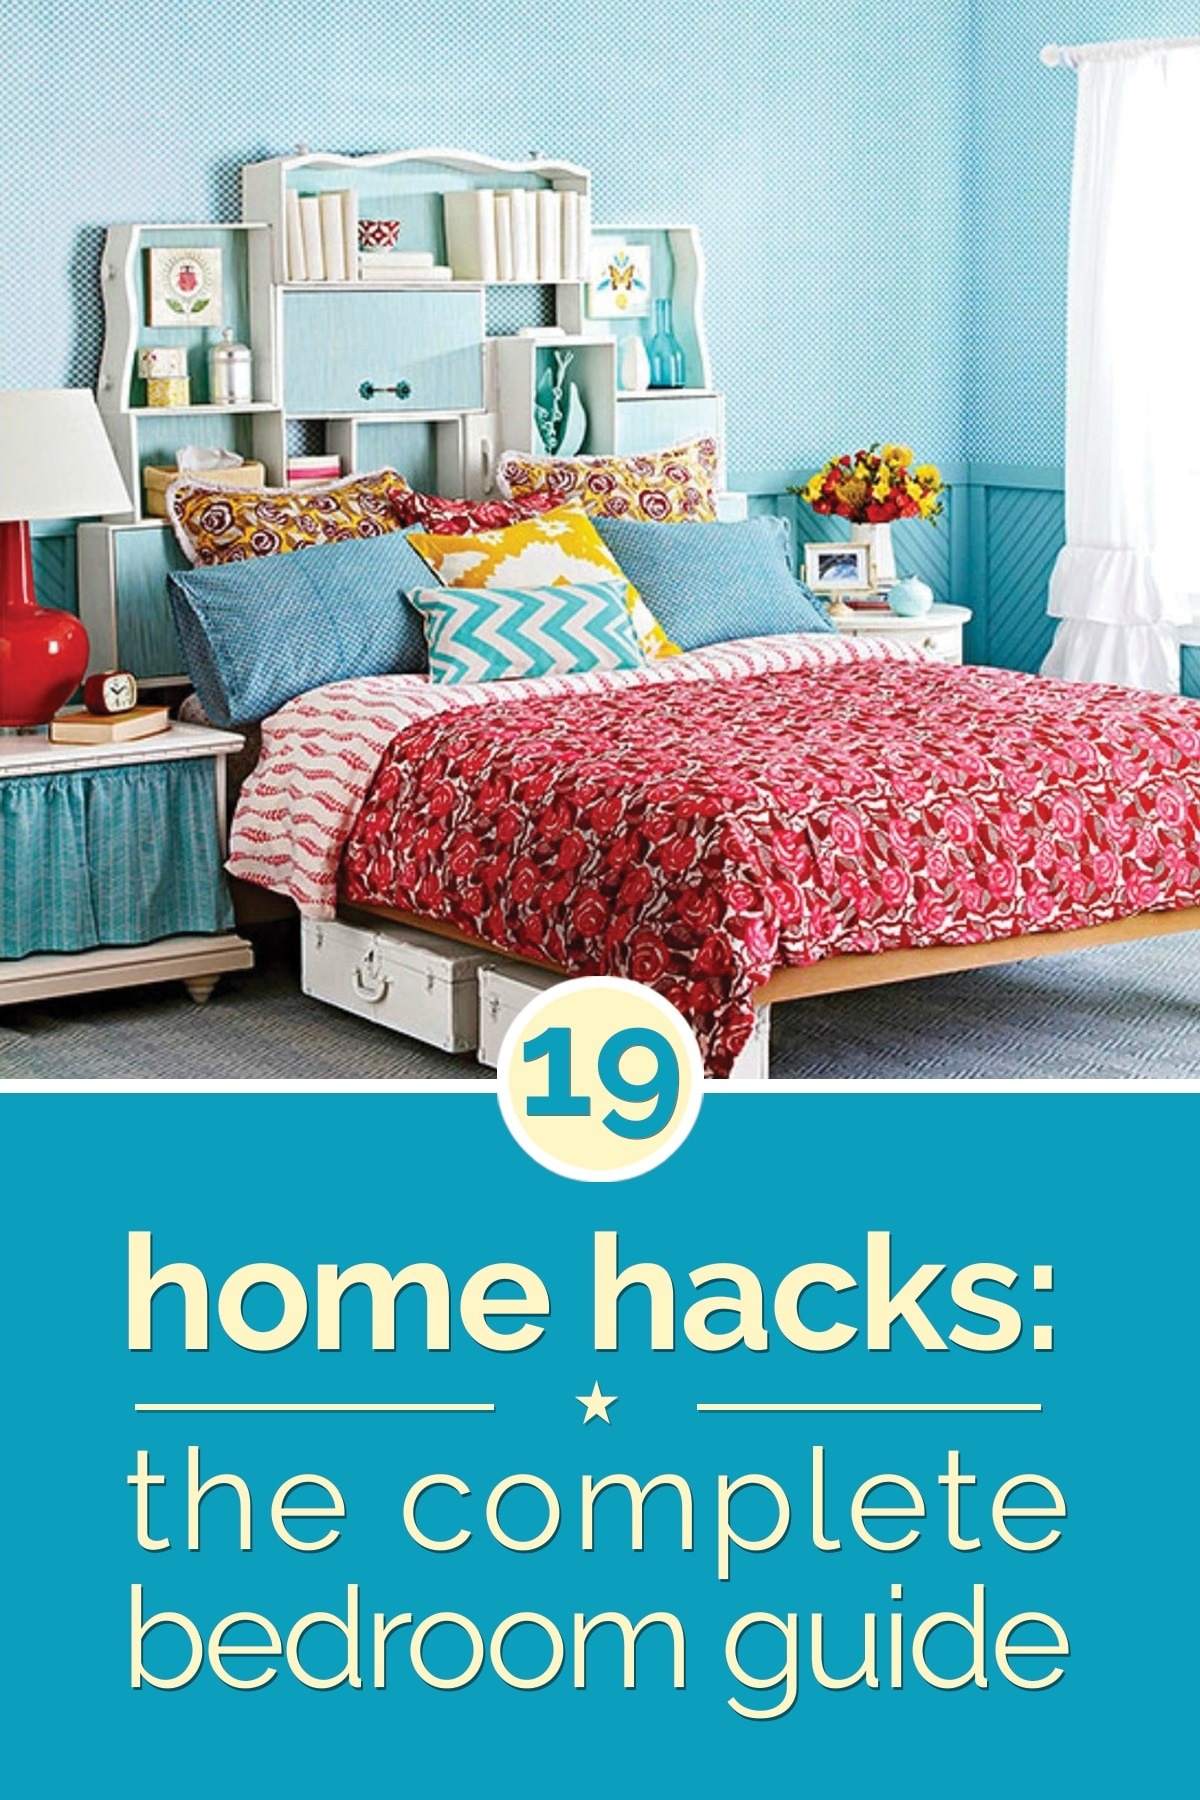 Home hacks 19 tips to organize your bedroom thegoodstuff Cool household hacks